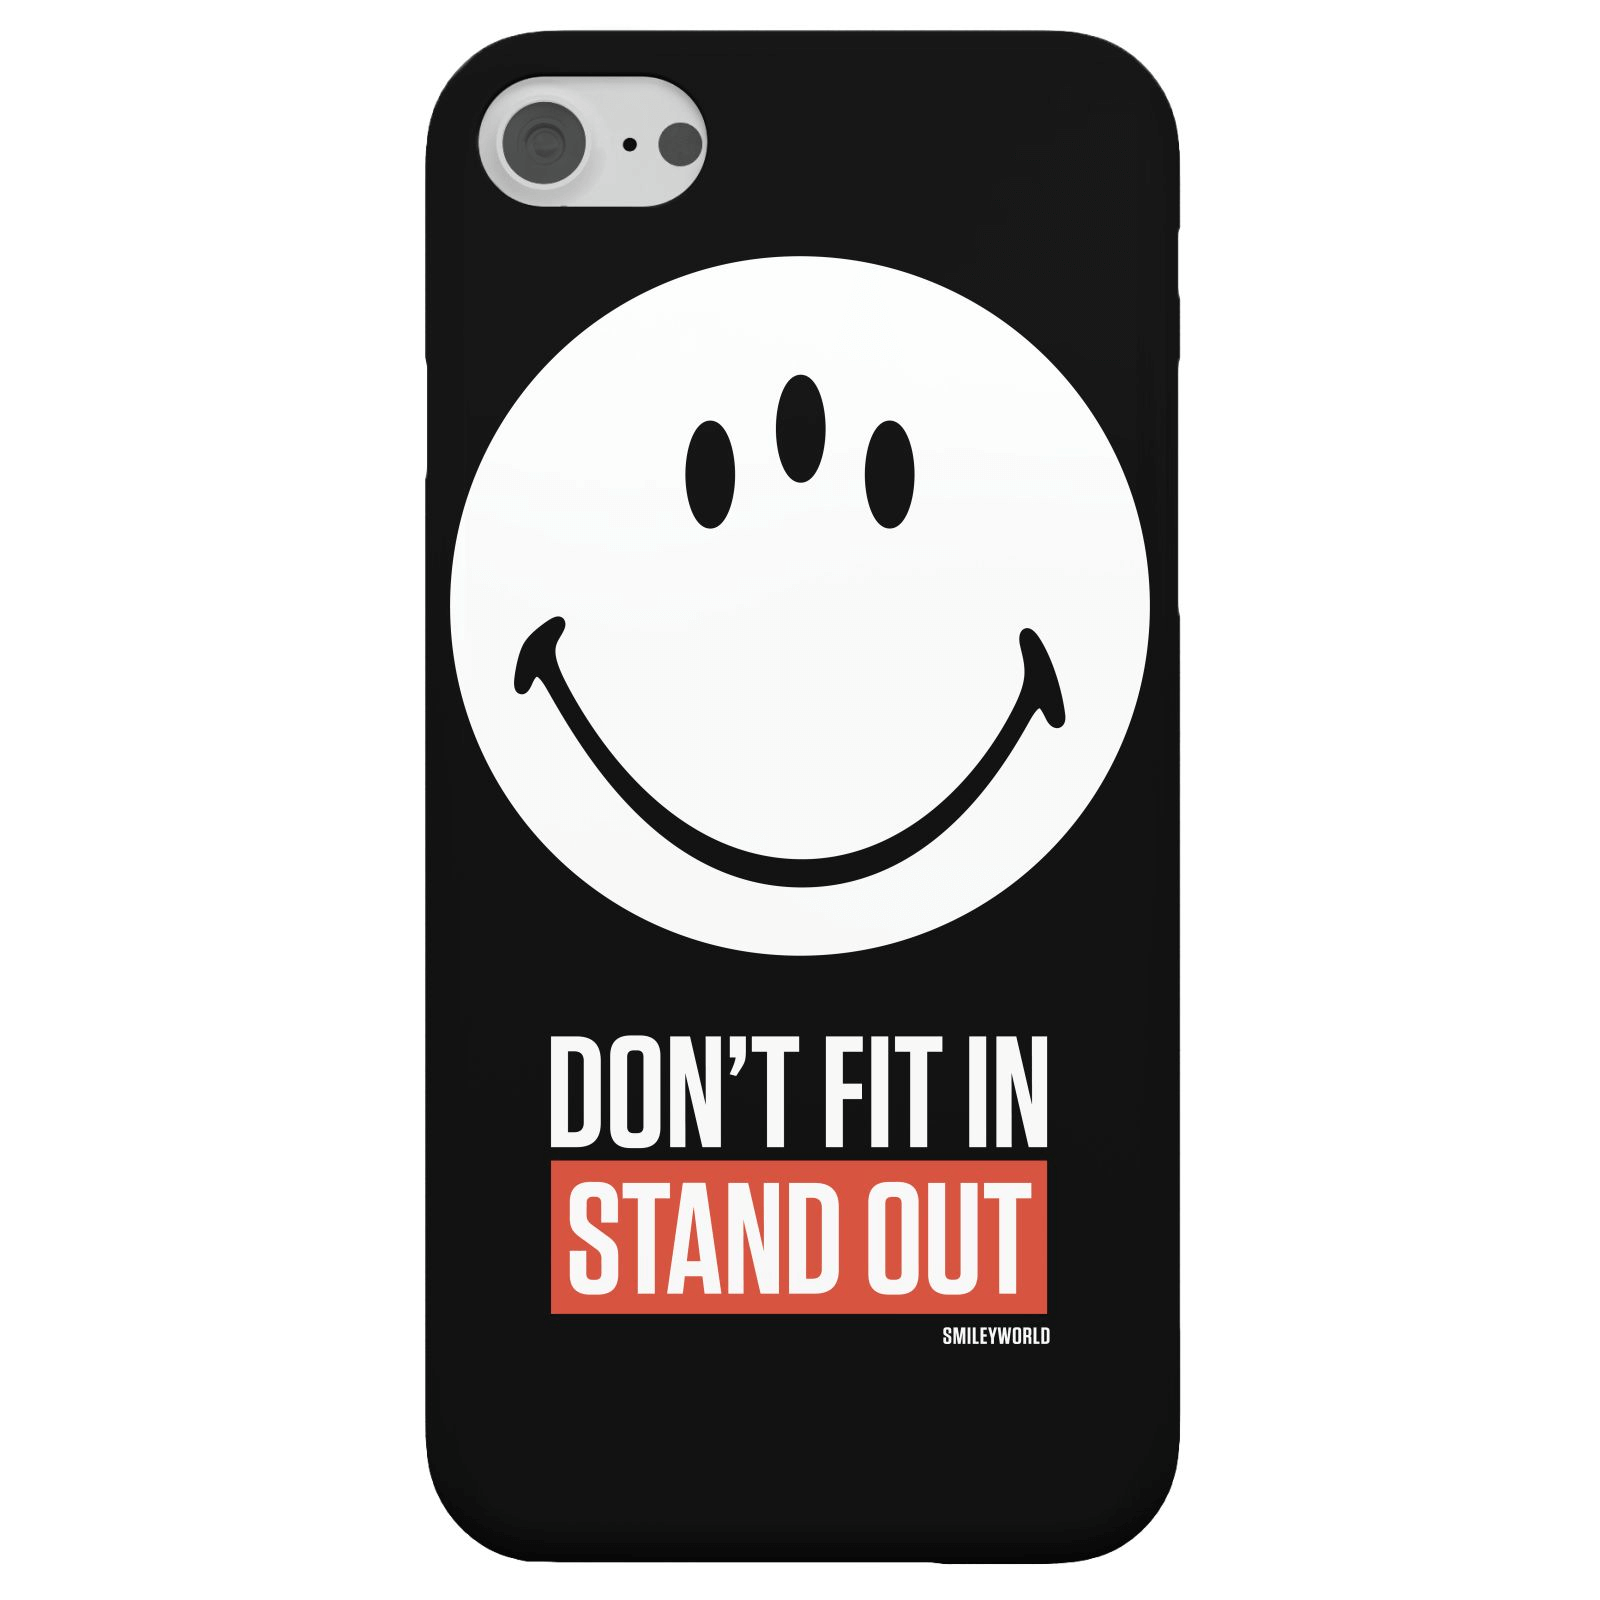 Smiley World Slogan Don't Fit In, Stand Out Phone Case for iPhone and Android - iPhone 5/5s - Snap Case - Matte